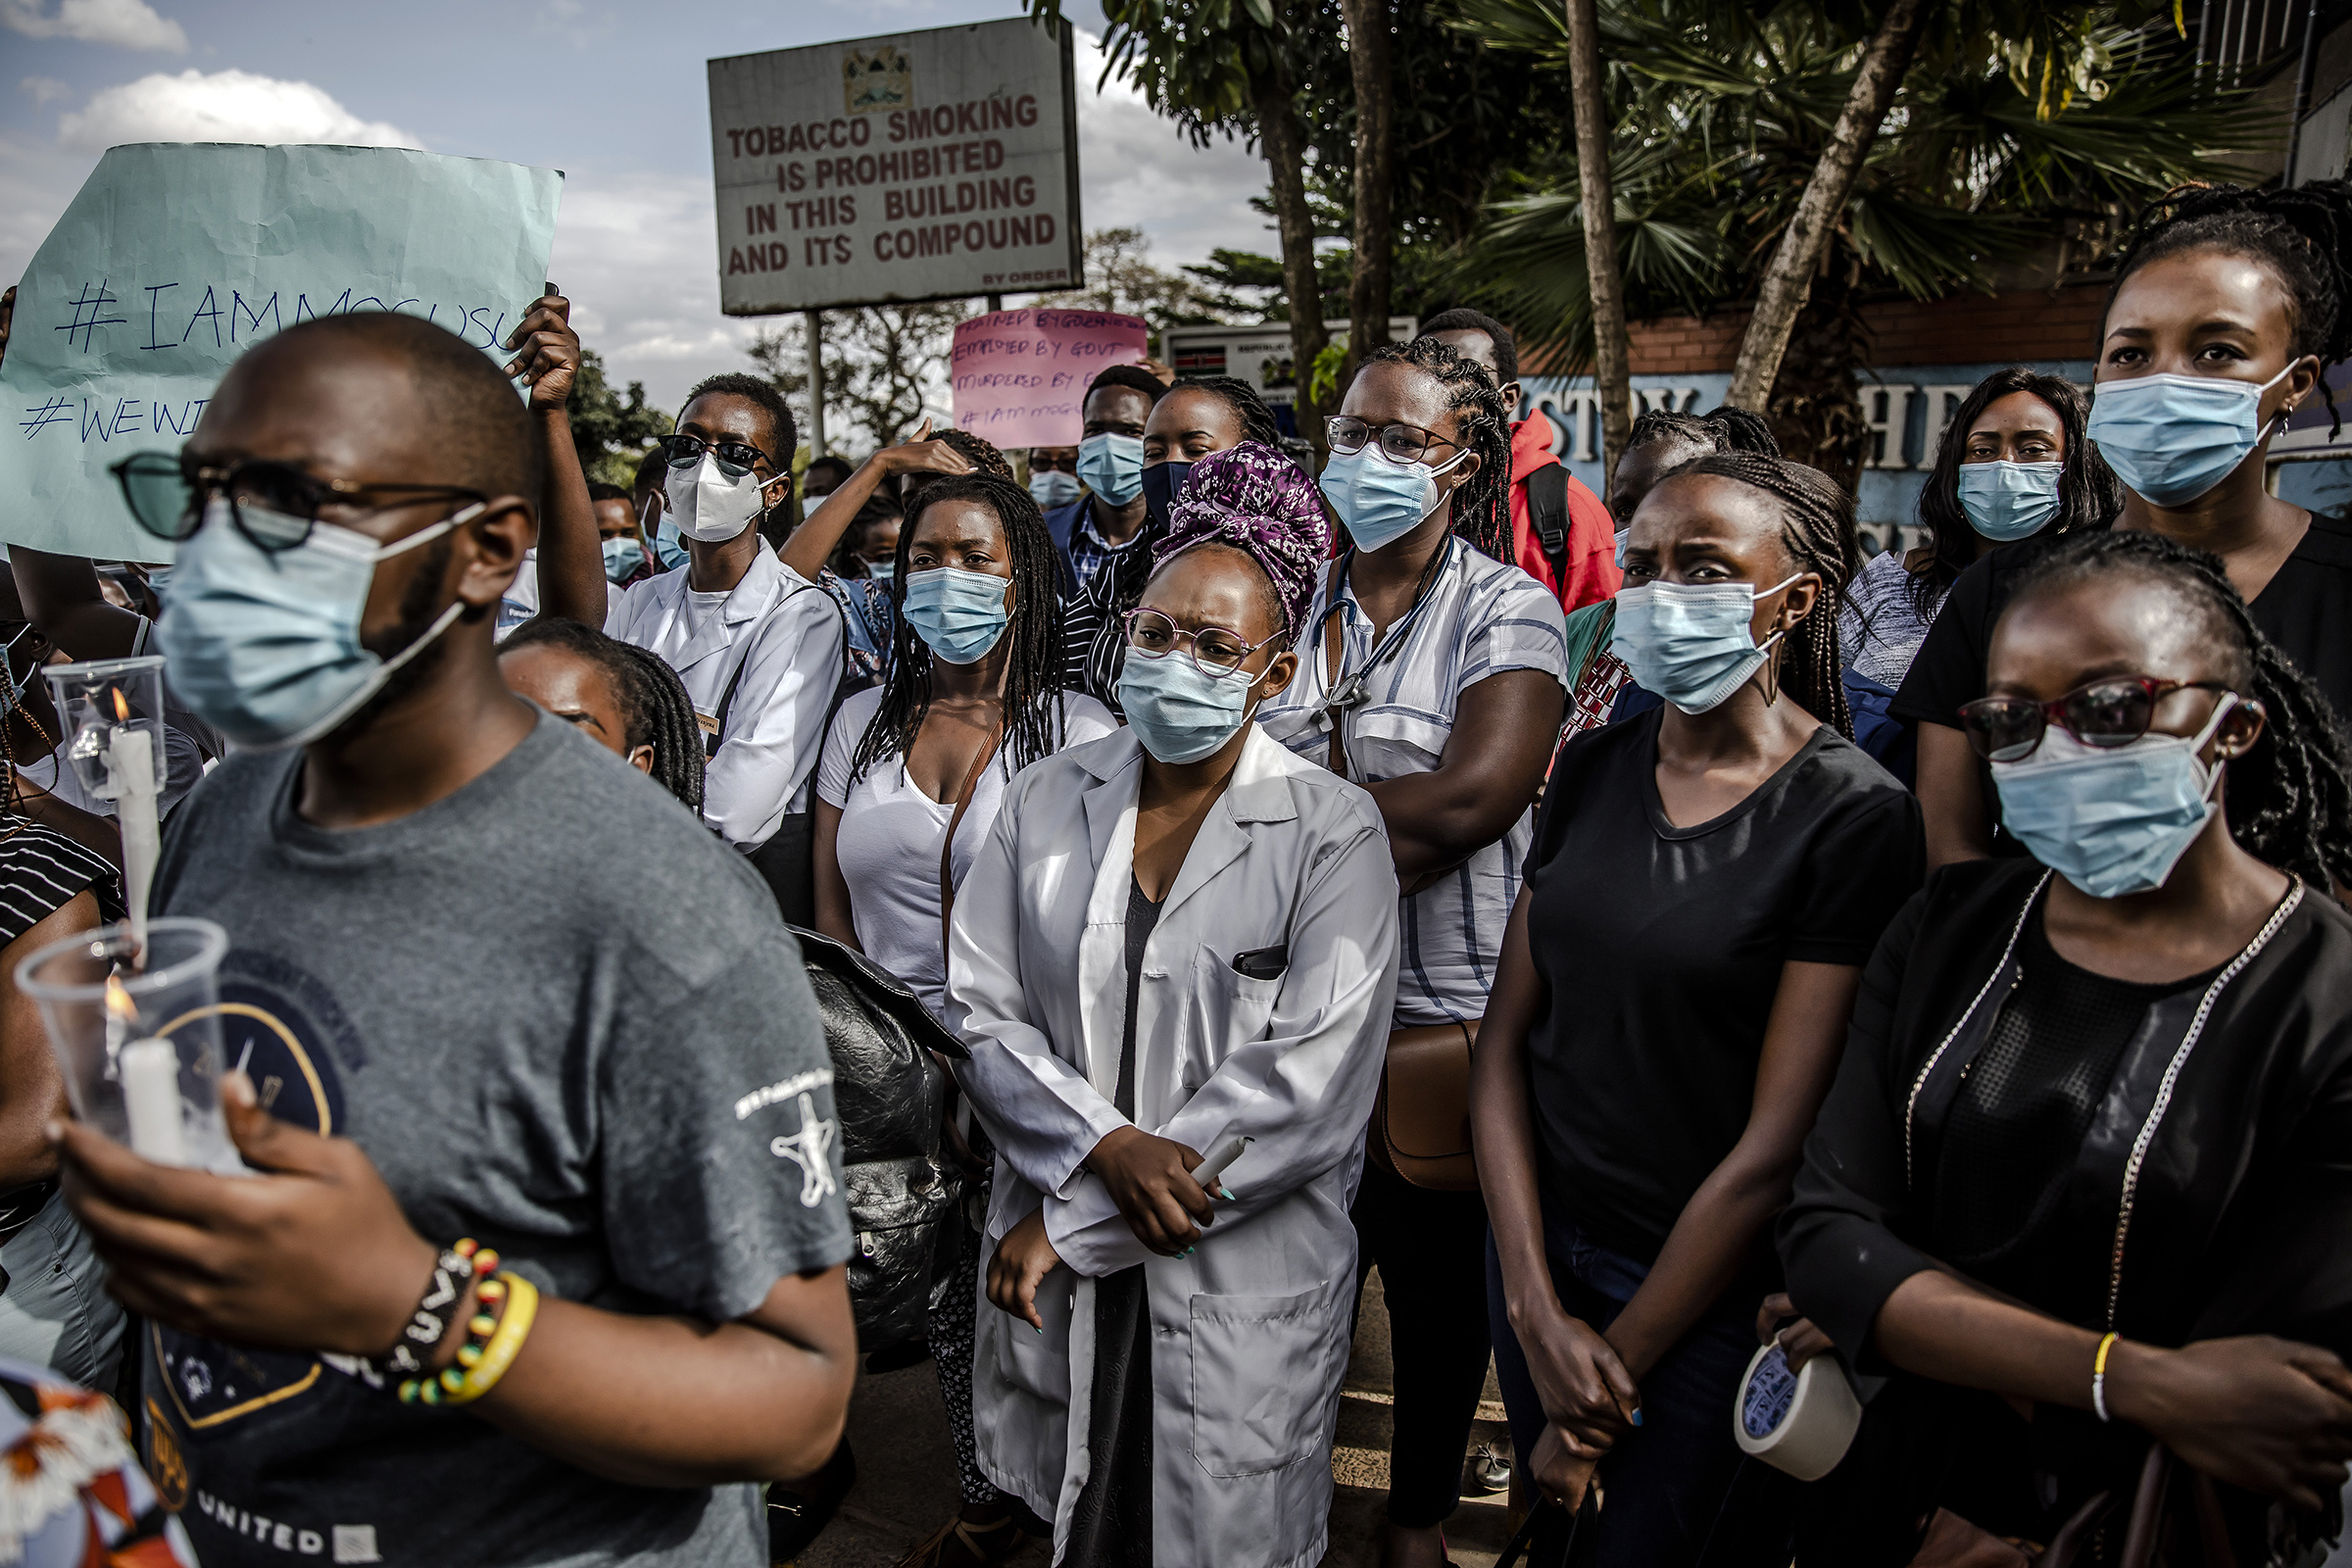 Demonstrators gather during a protest by health care workers, including nurses and clinical officers, against poor working conditions outside the Ministry of Health in Nairobi on Dec. 9, 2020.